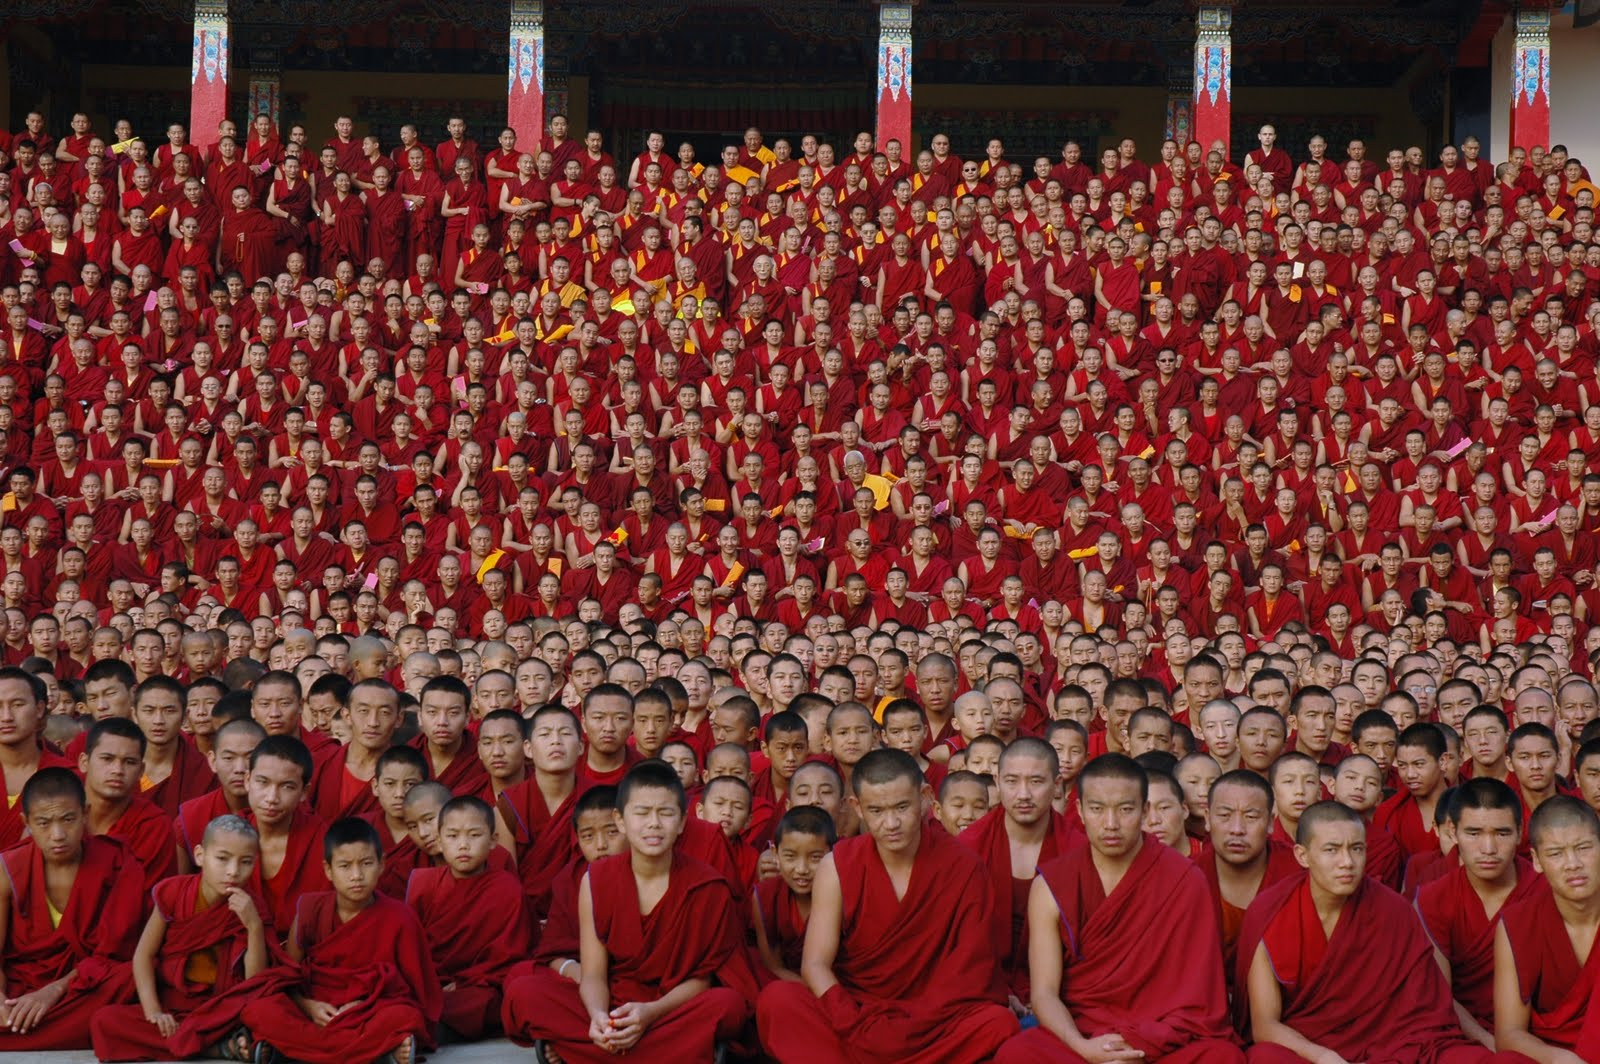 Some of the 2600 monks of Sera Je Monastery